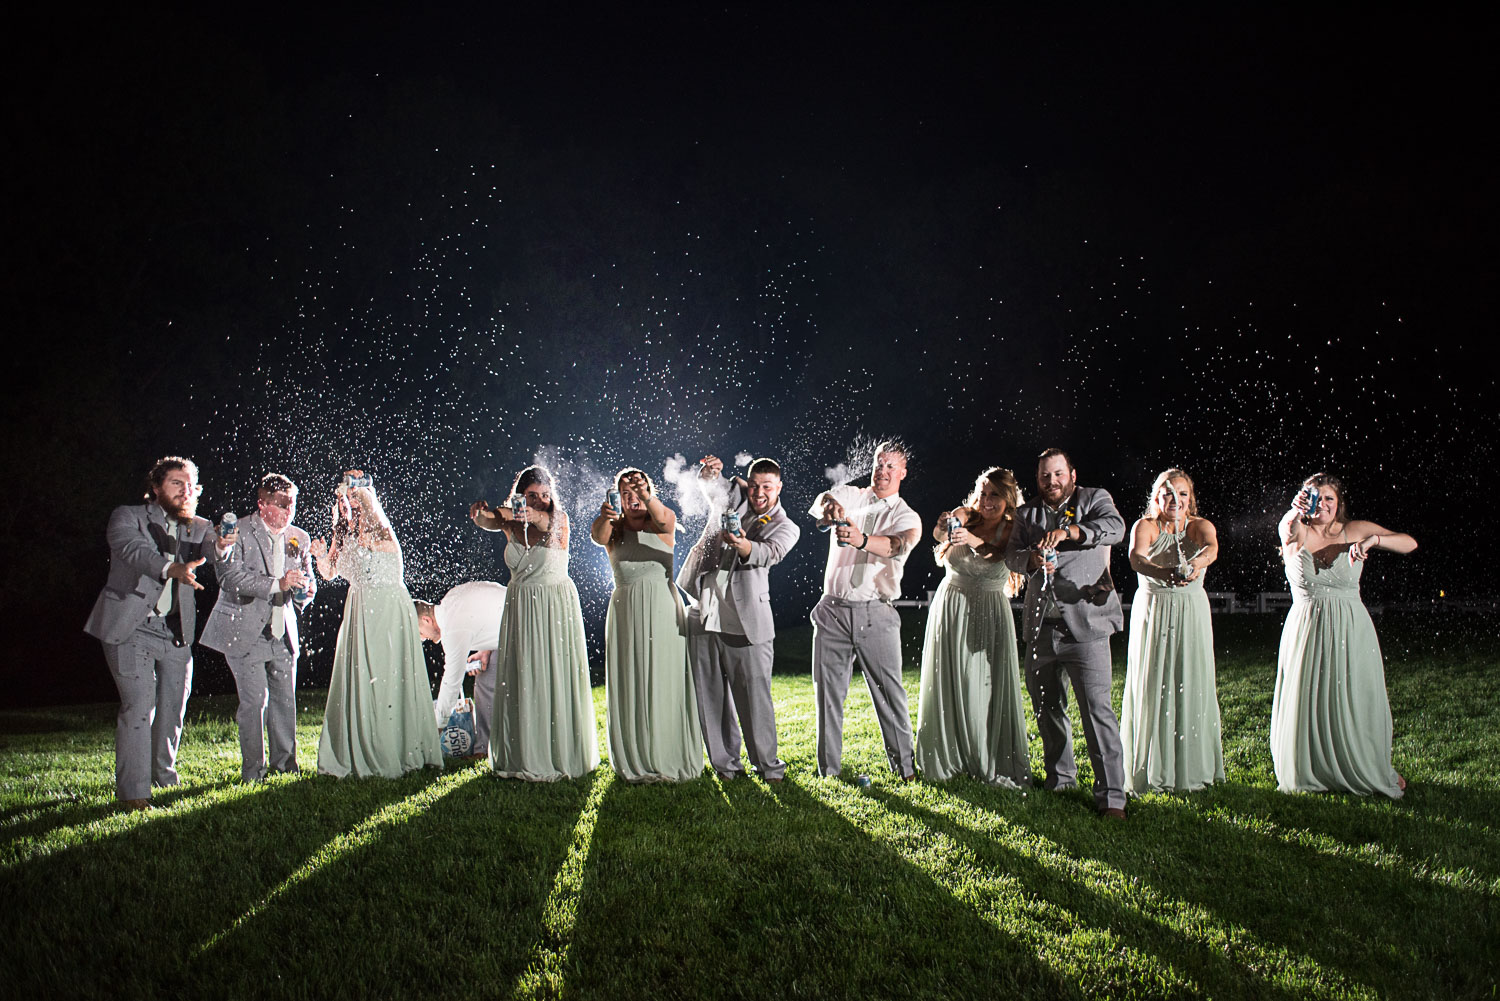 146 busch light bridal party photo.jpg